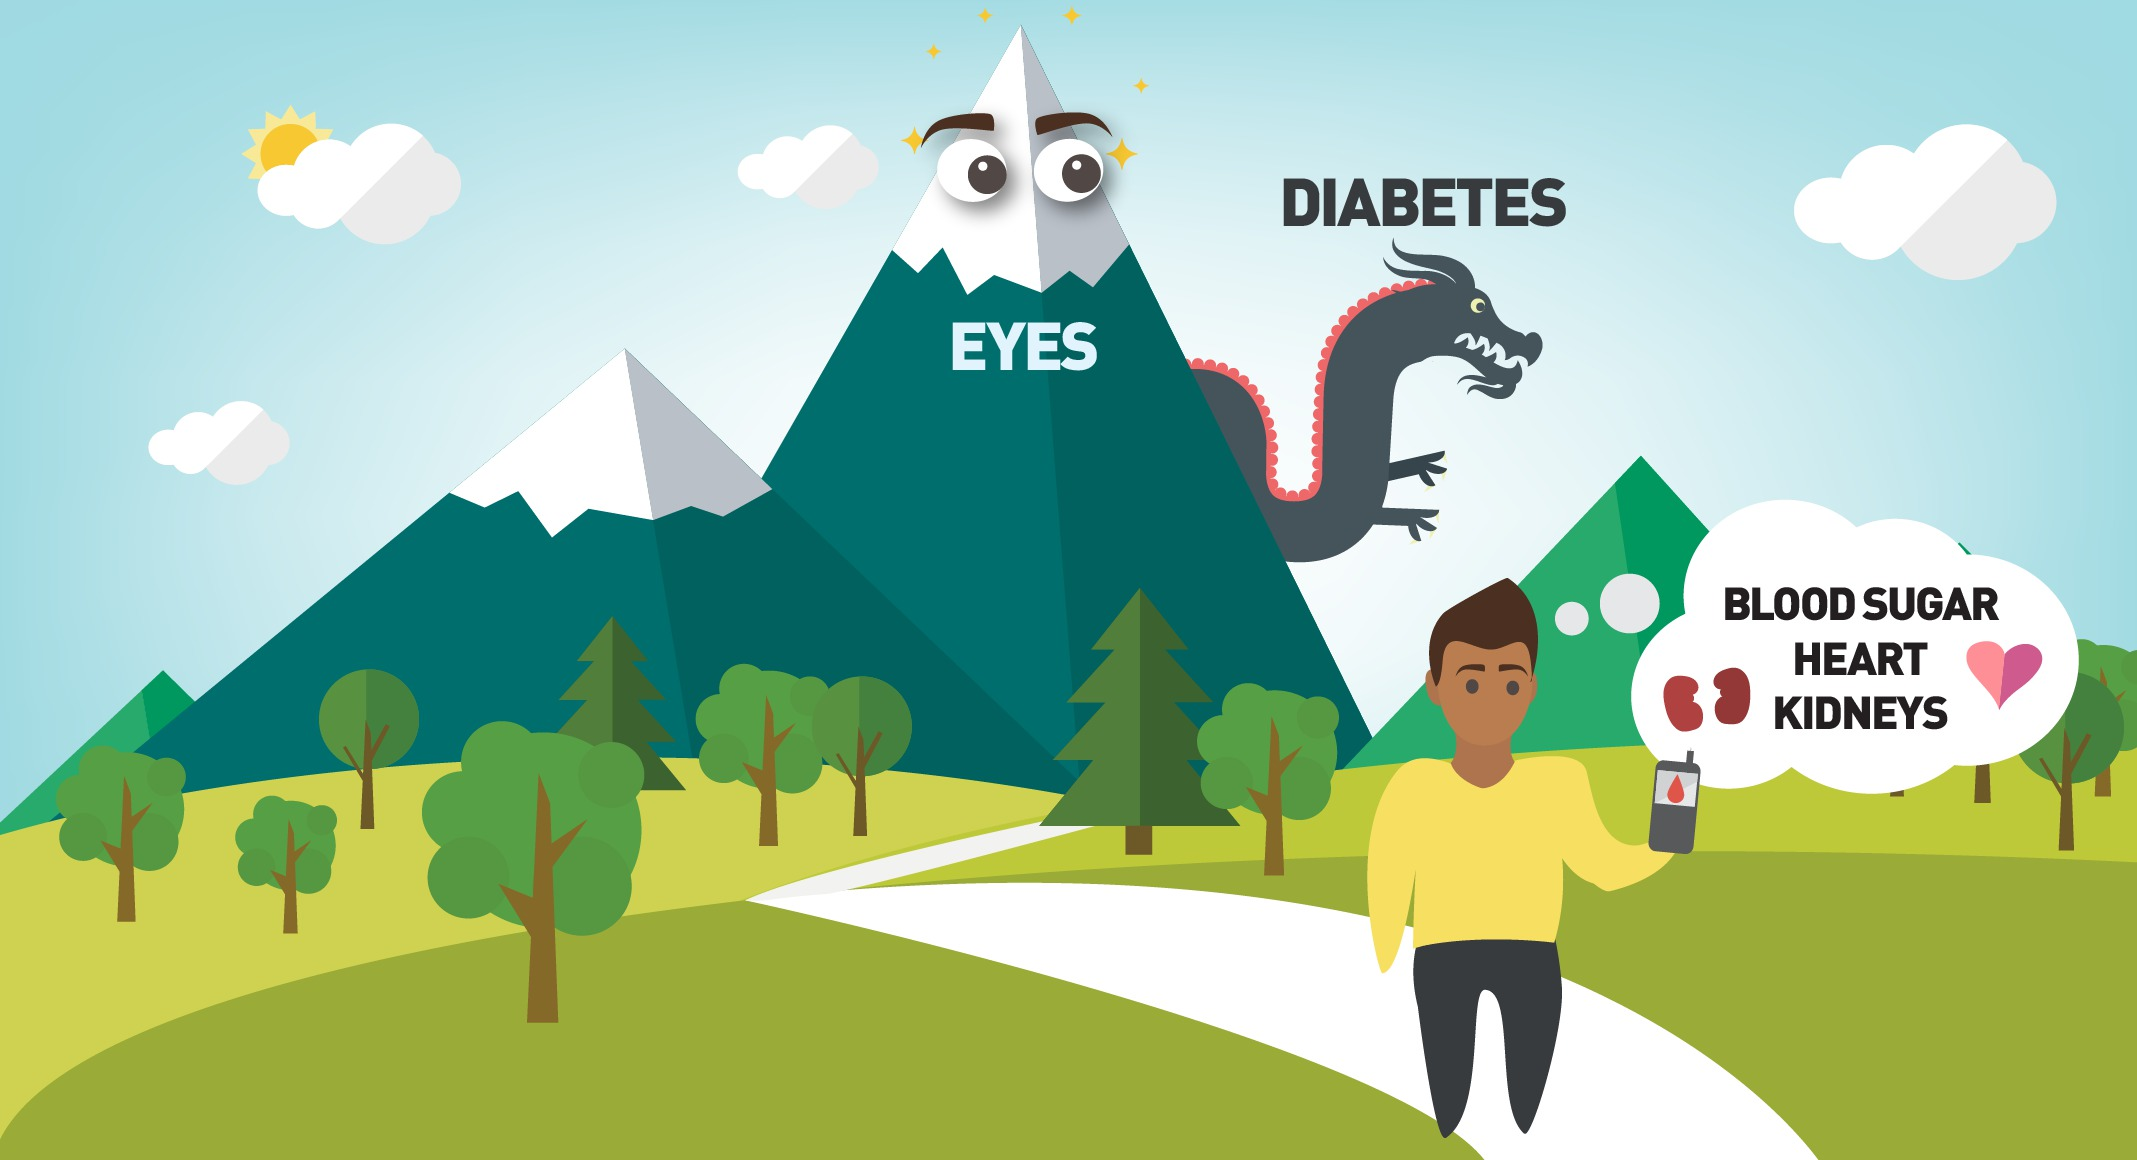 Having Diabetes Means More Than Just Taking Pills Or Getting Injections  Every Day If You Have Diabetes, Your Vision Is At Risk In Fact, Most  People With